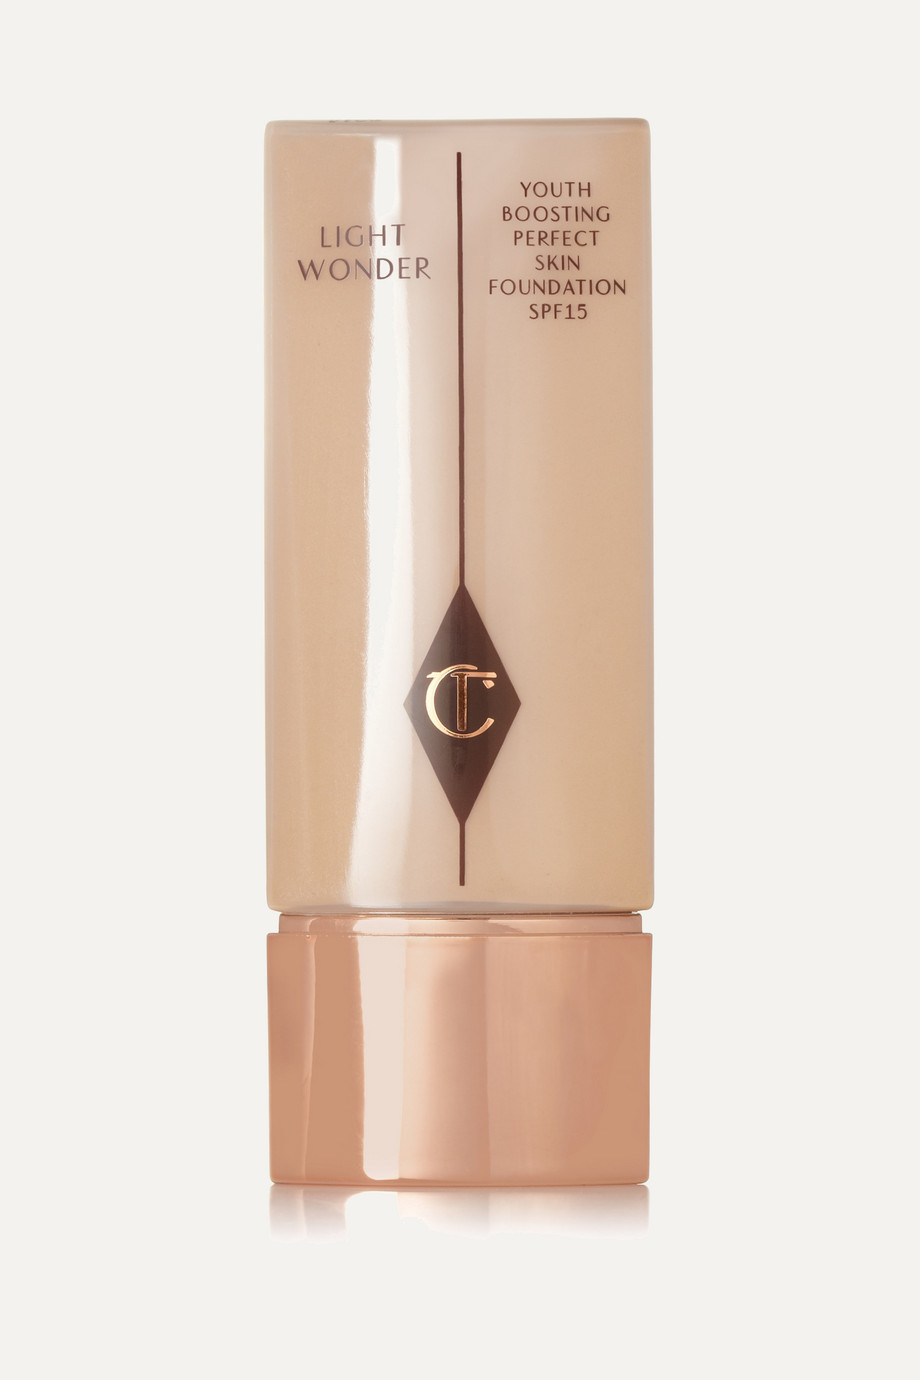 Charlotte Tilbury Light Wonder Youth-Boosting Foundation LSF 15 – 2 Fair, 40 ml – Foundation